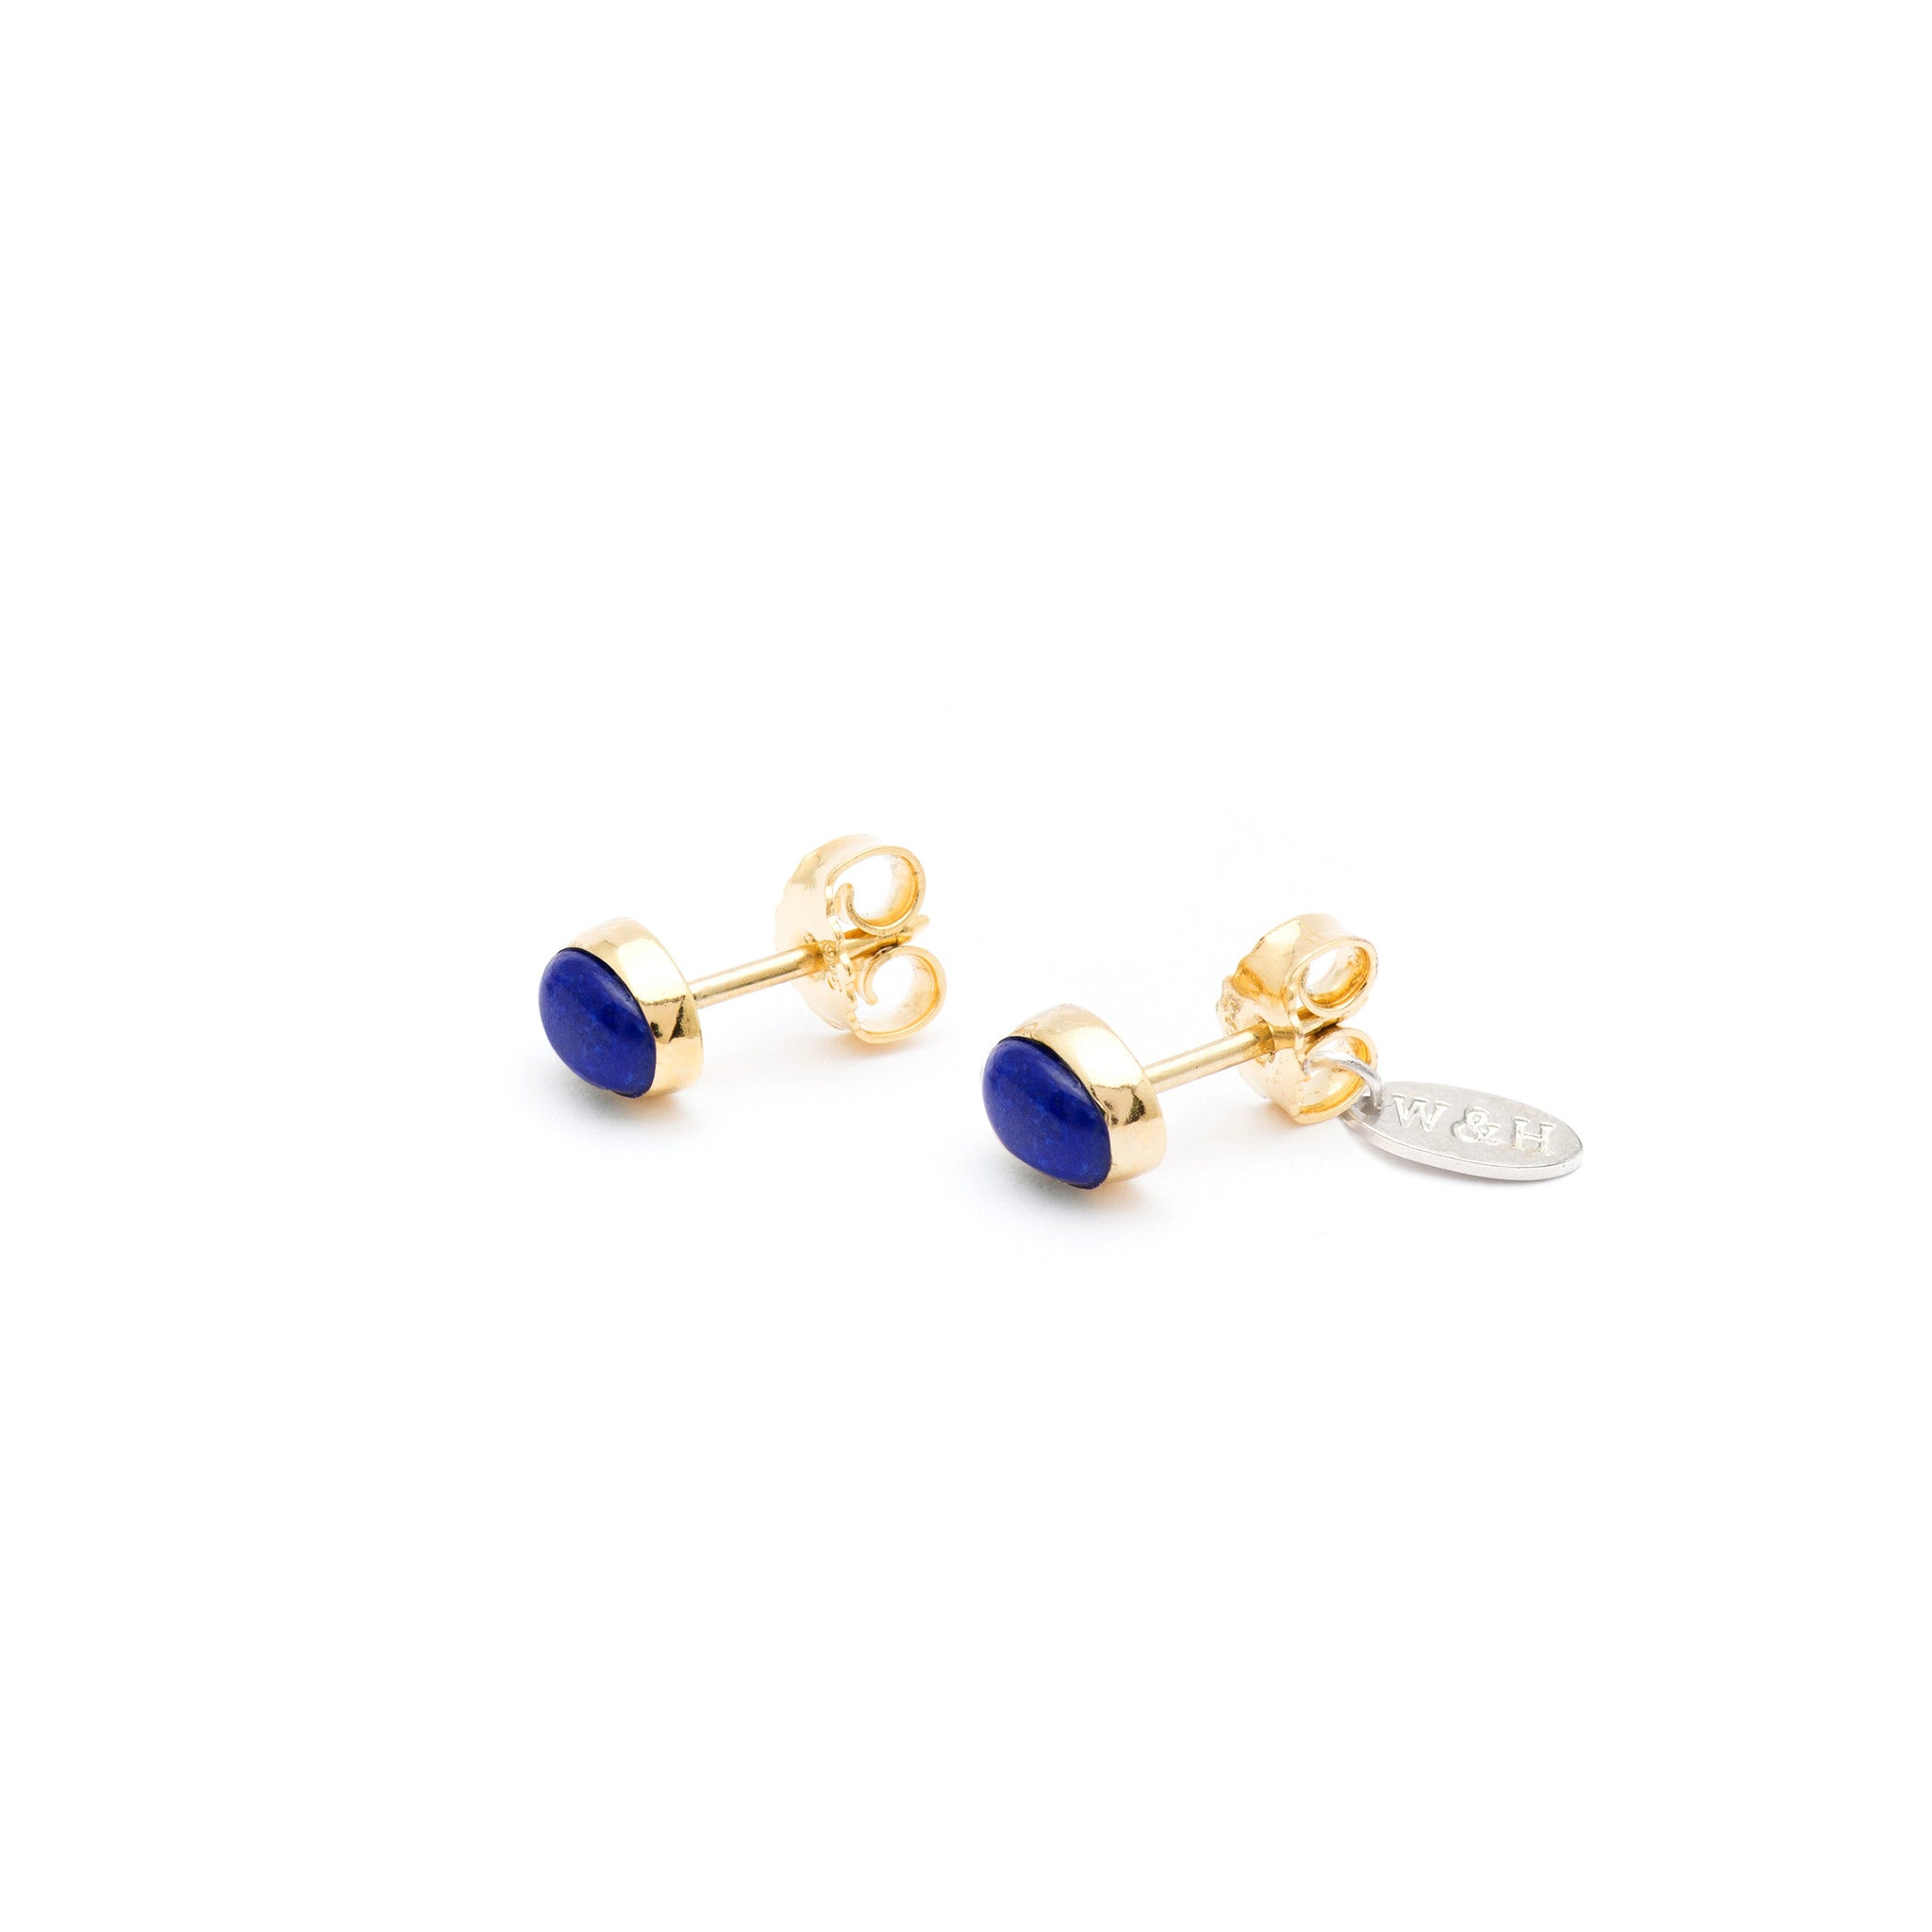 Stud Earrings with Lapis Lazuli stone